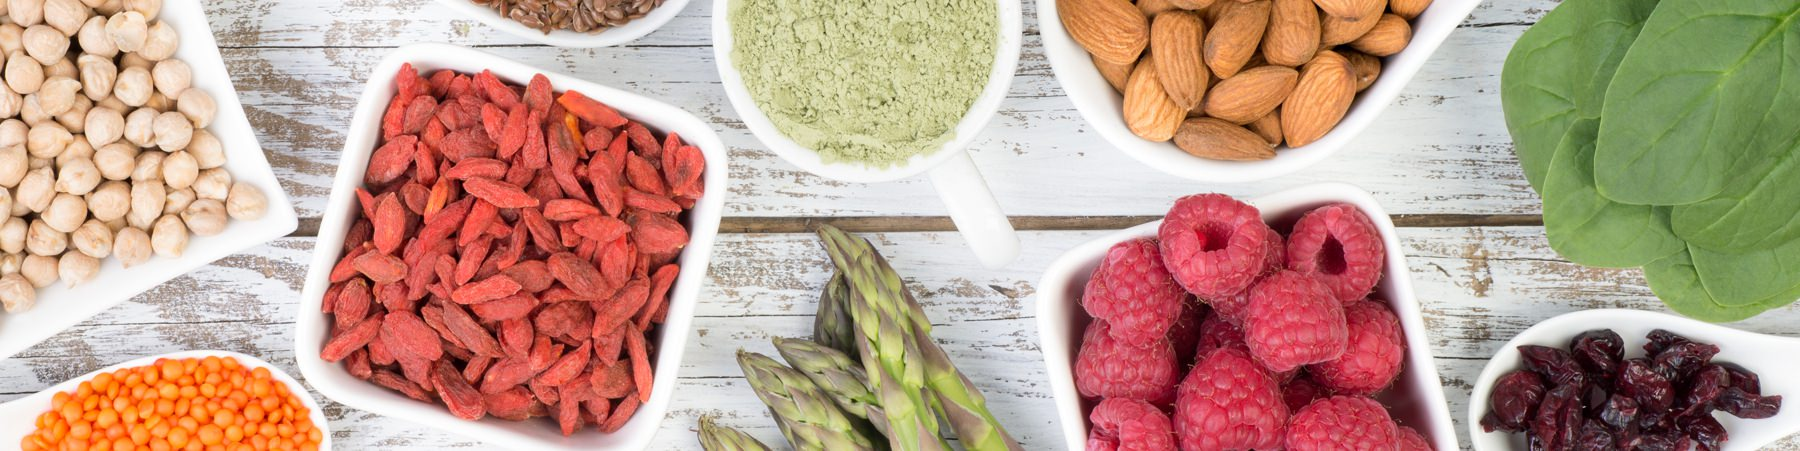 importance-of-fibre-in-the-diet